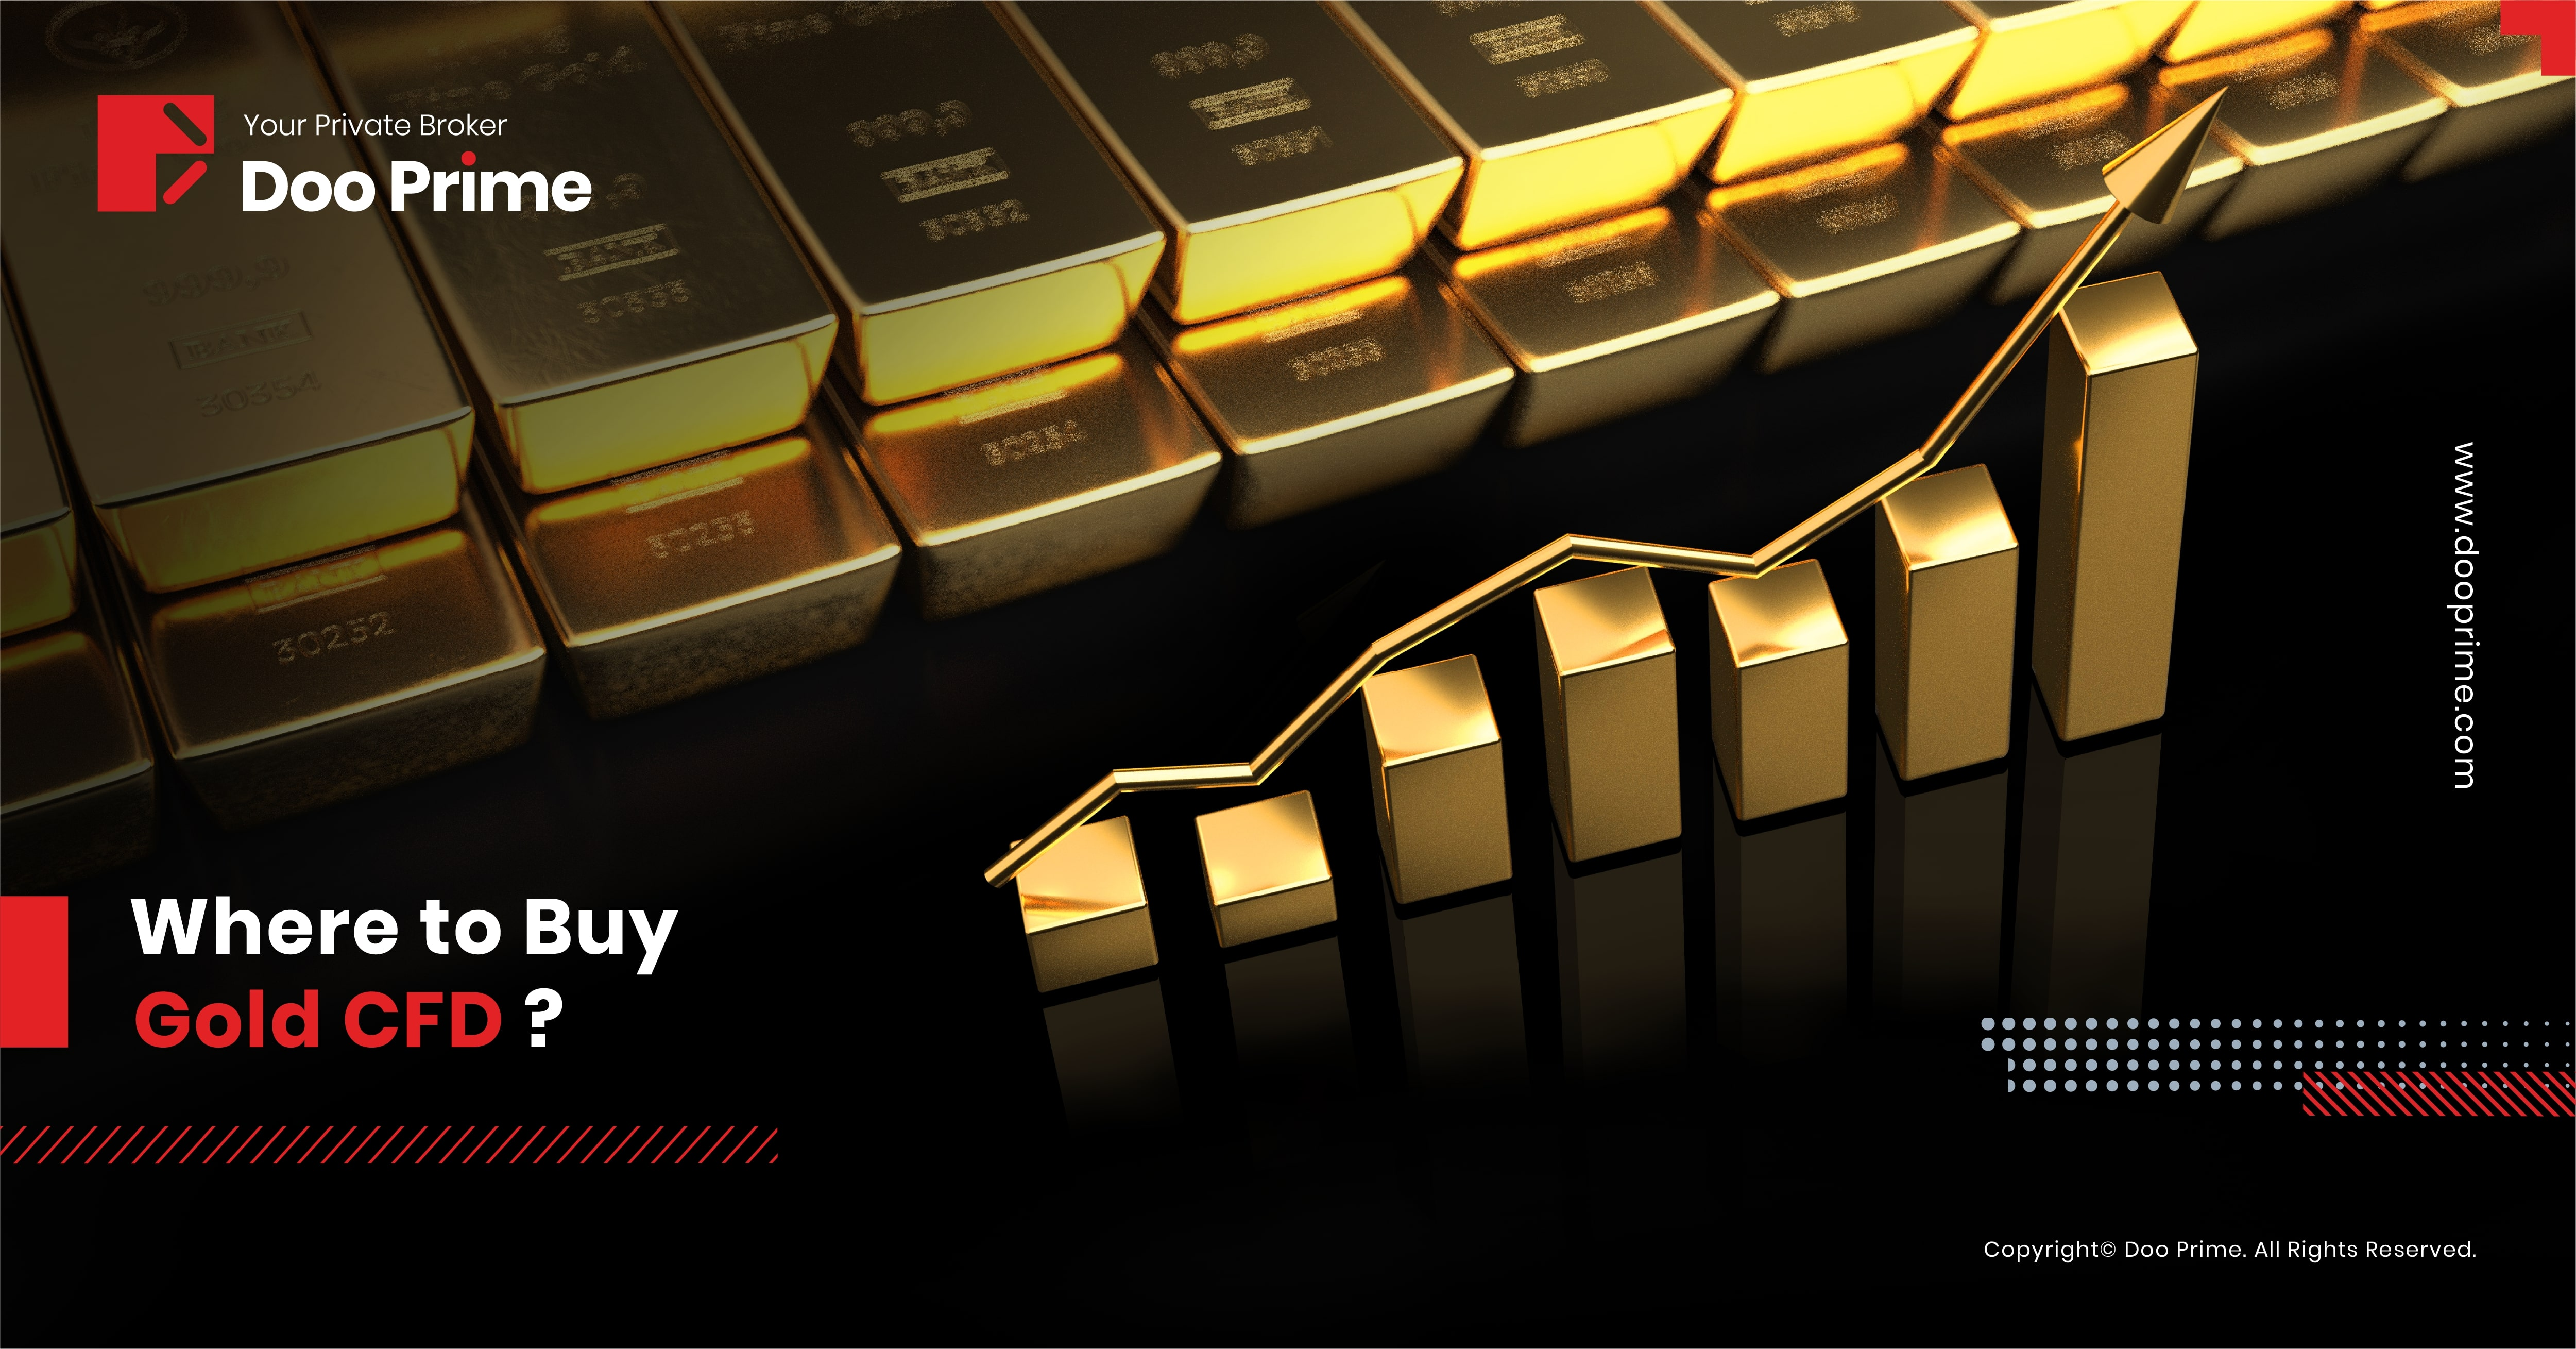 Where To Buy Gold CFD?